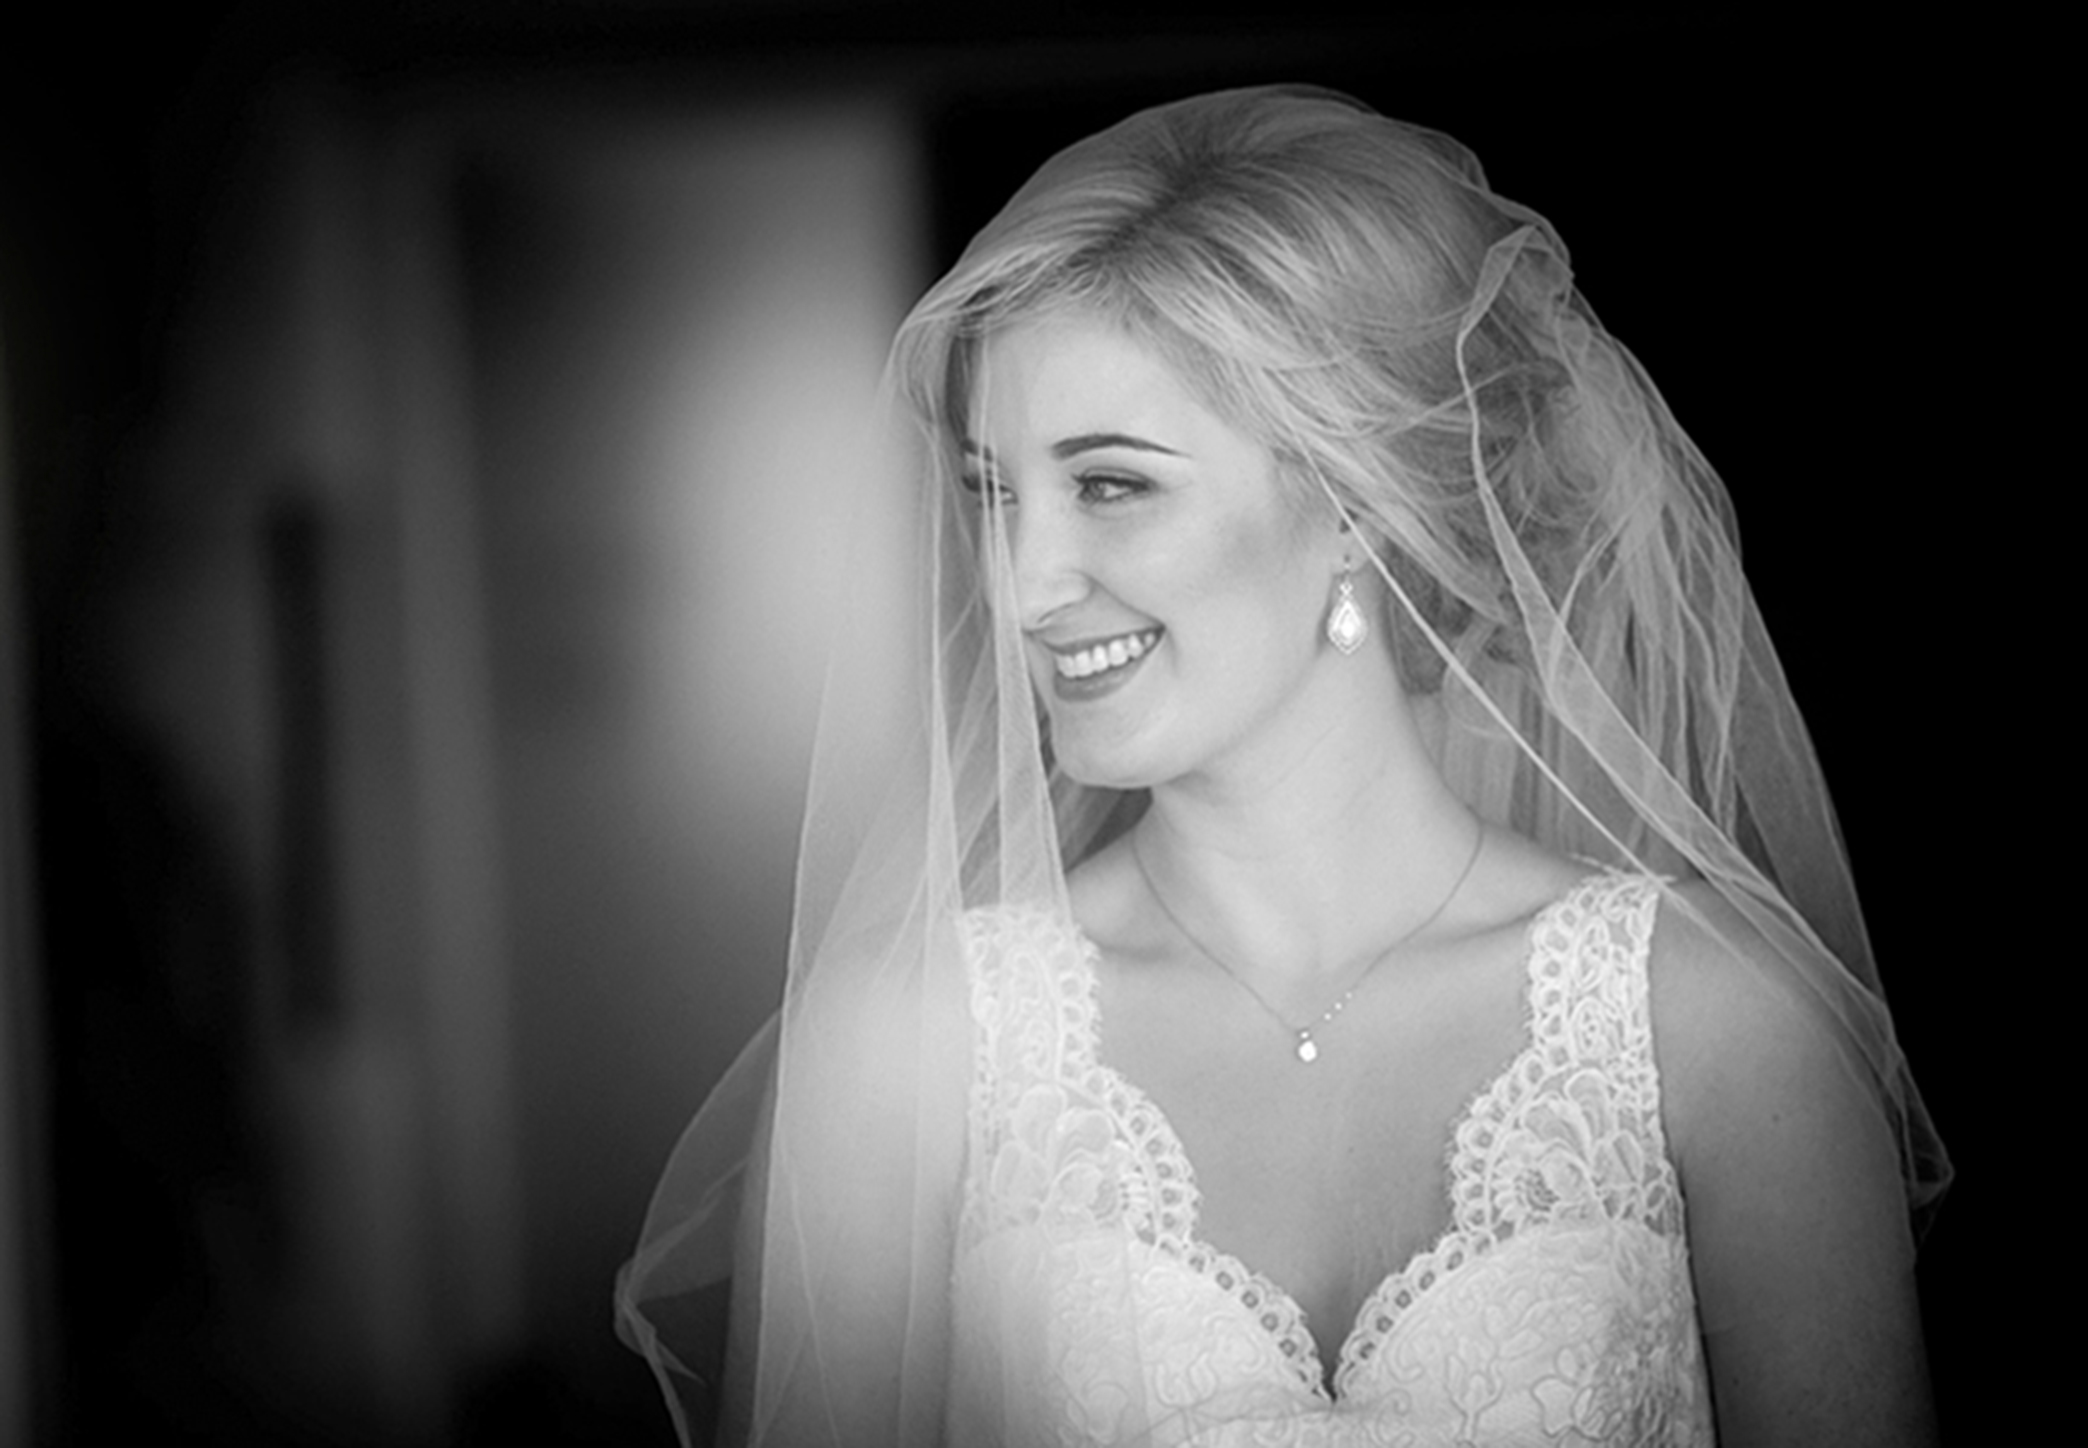 Bride-wering -veil-smiling-happy-blck-and-white-photo